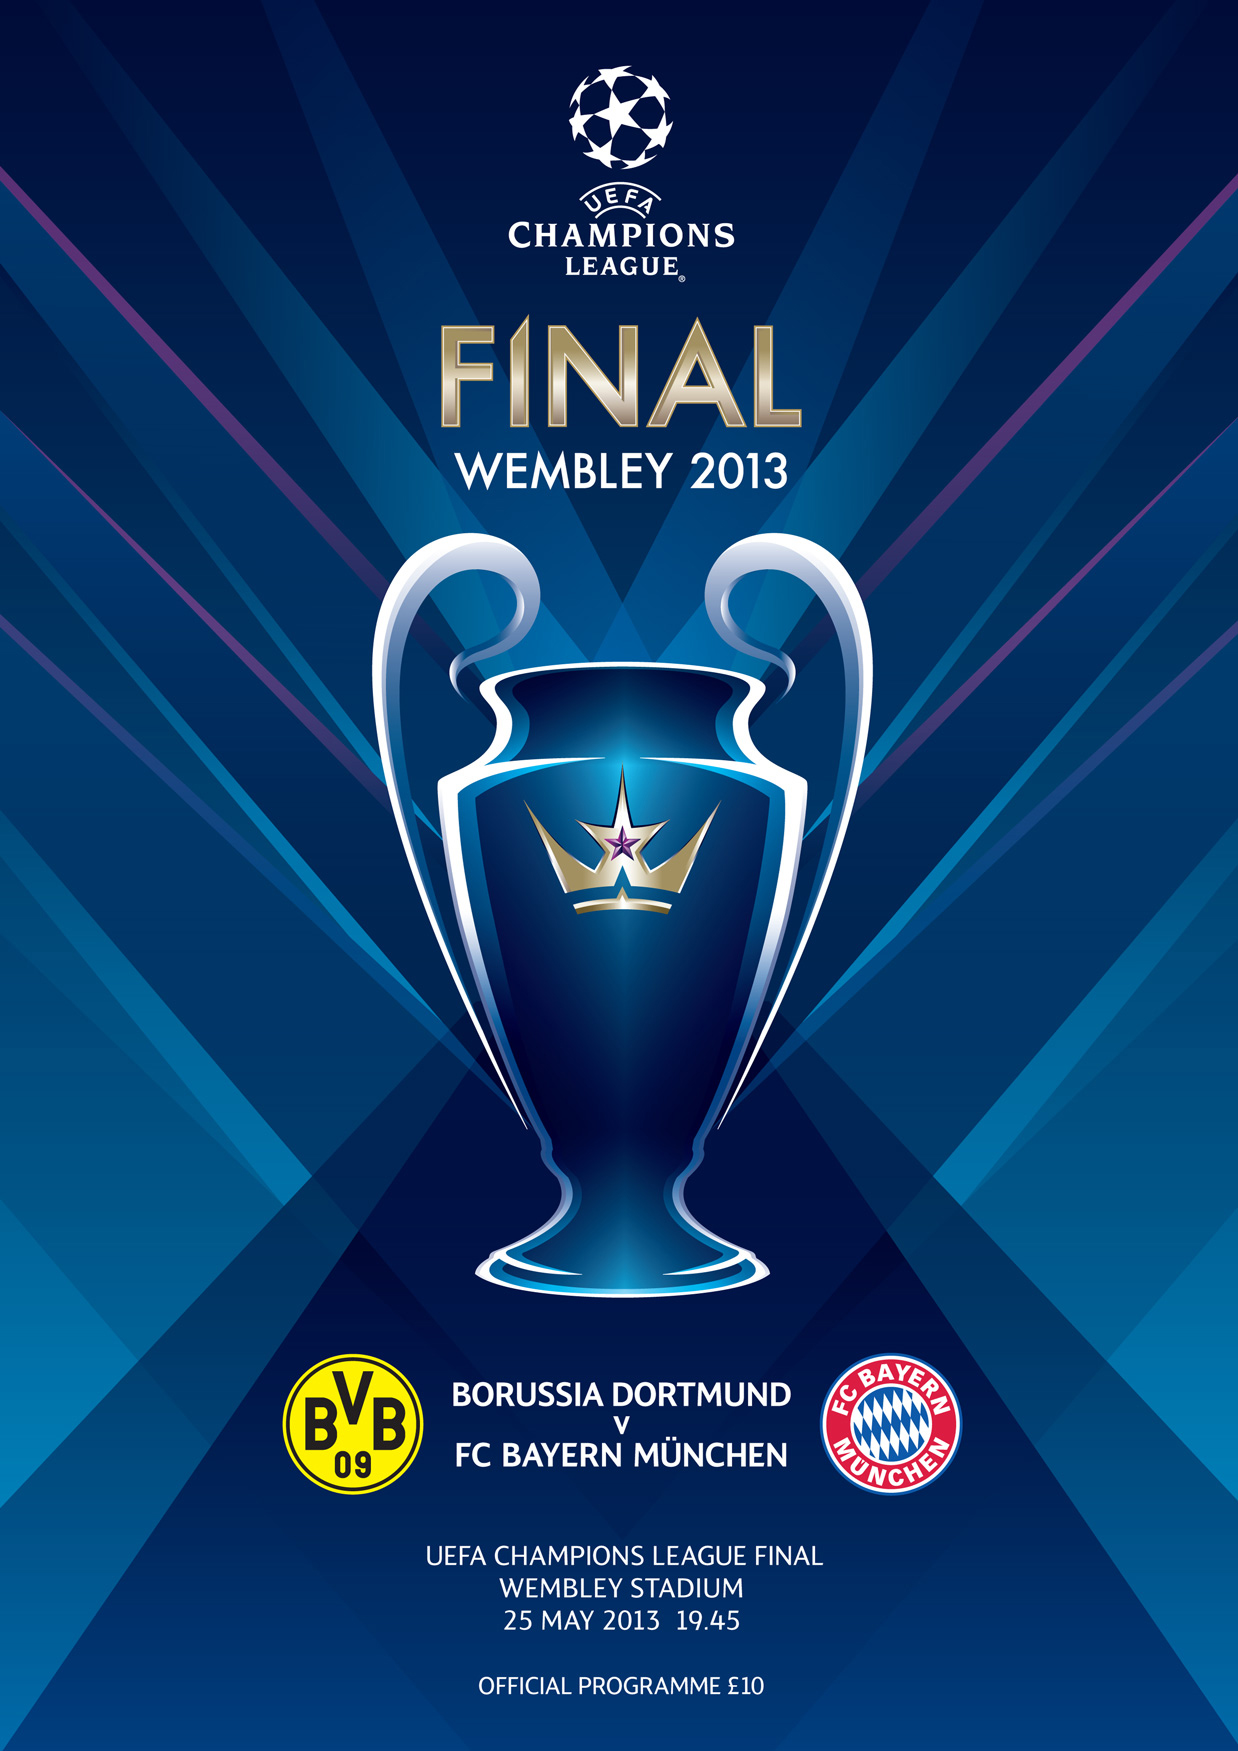 UEFA Champions League Final 2013 Programme